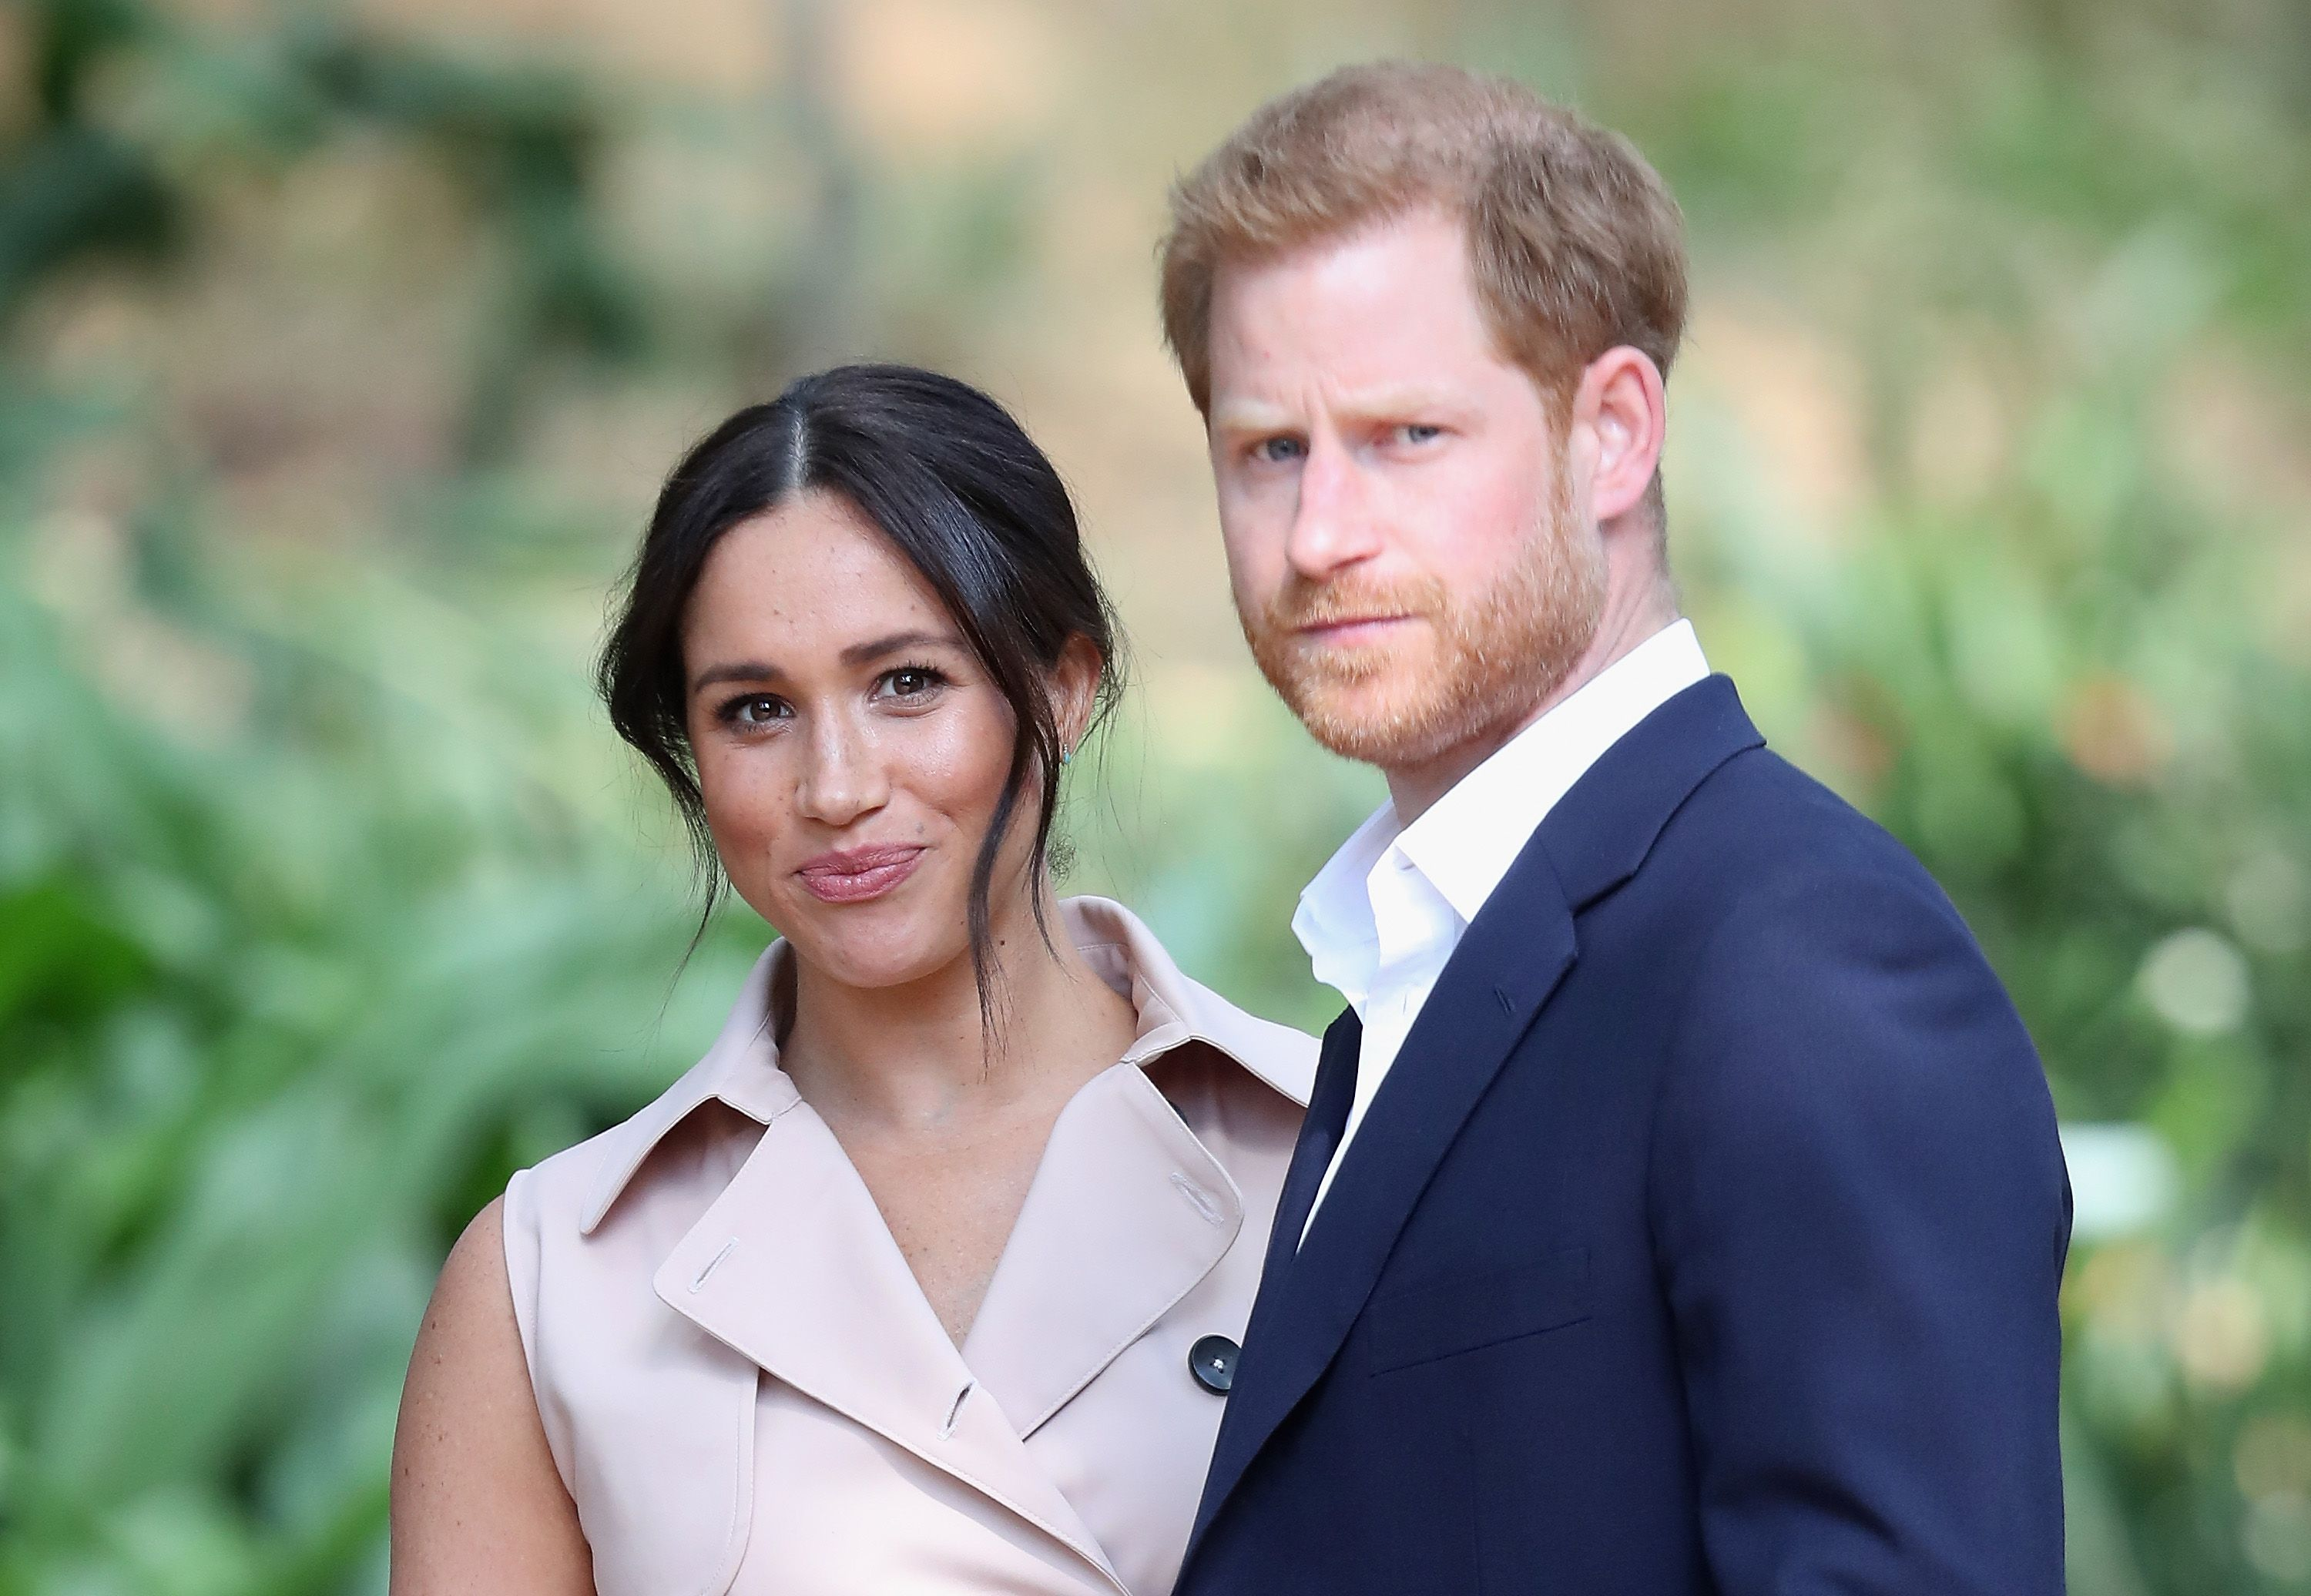 Prince Harry and Meghan Markle Are Allegedly Considering Moving to Canada With Baby Archie